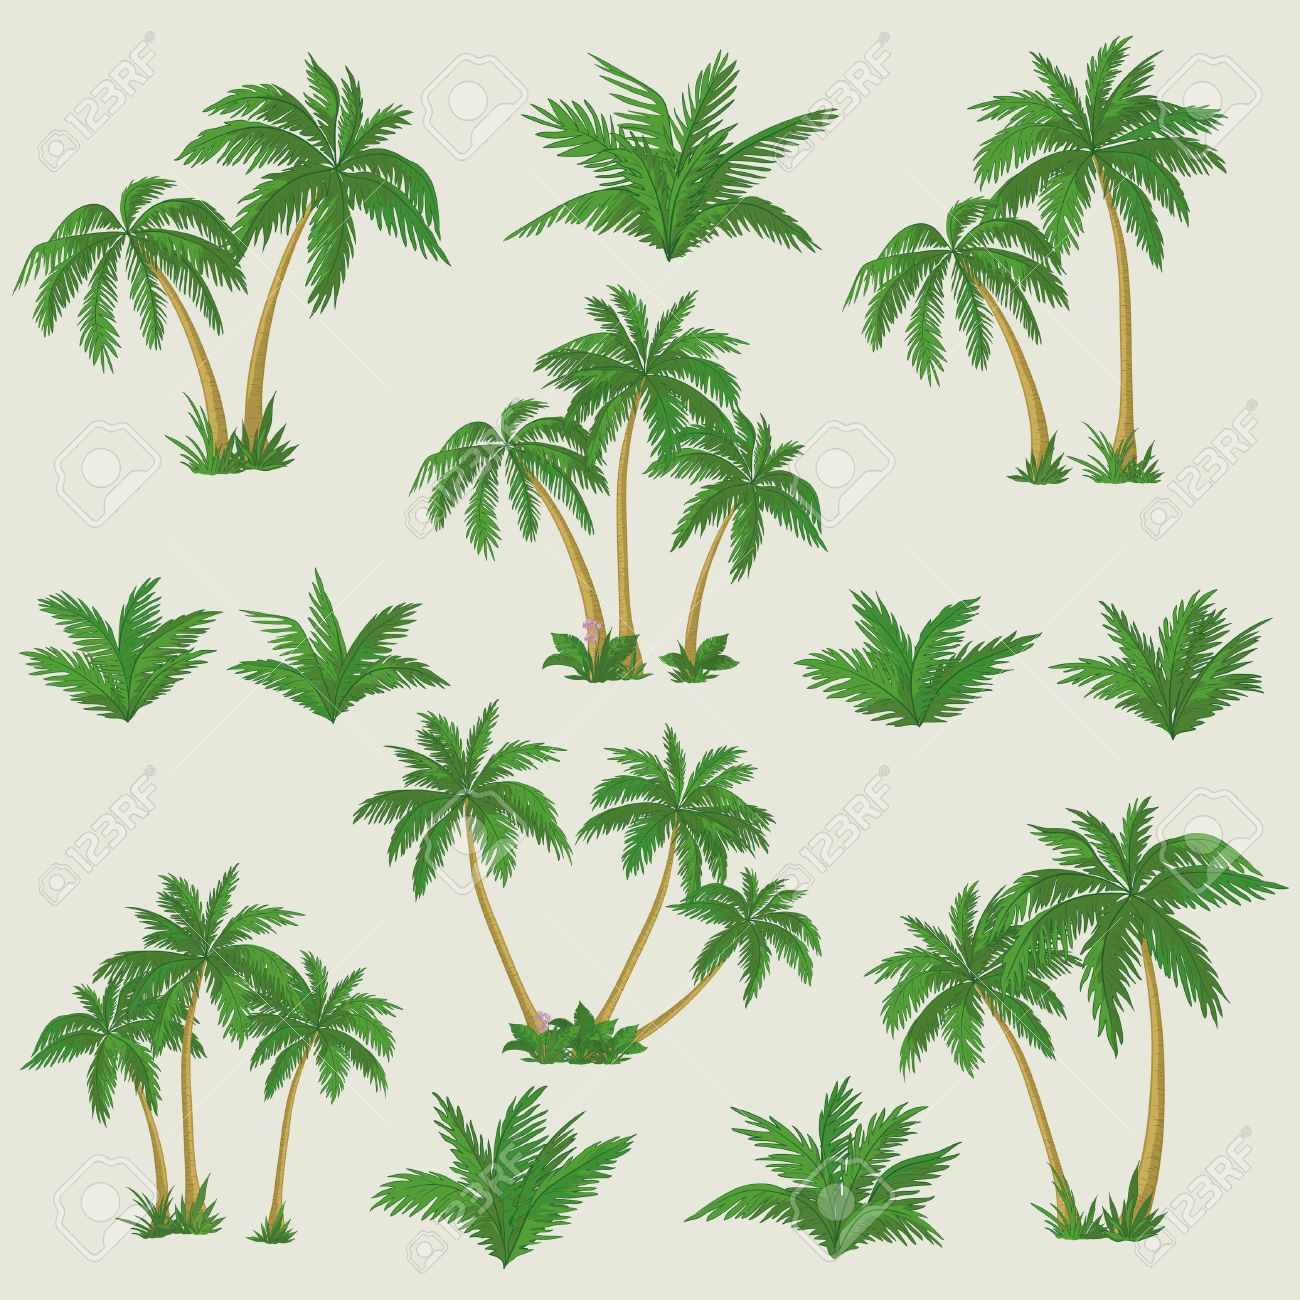 set tropical palm trees with green leaves, mature and young plants